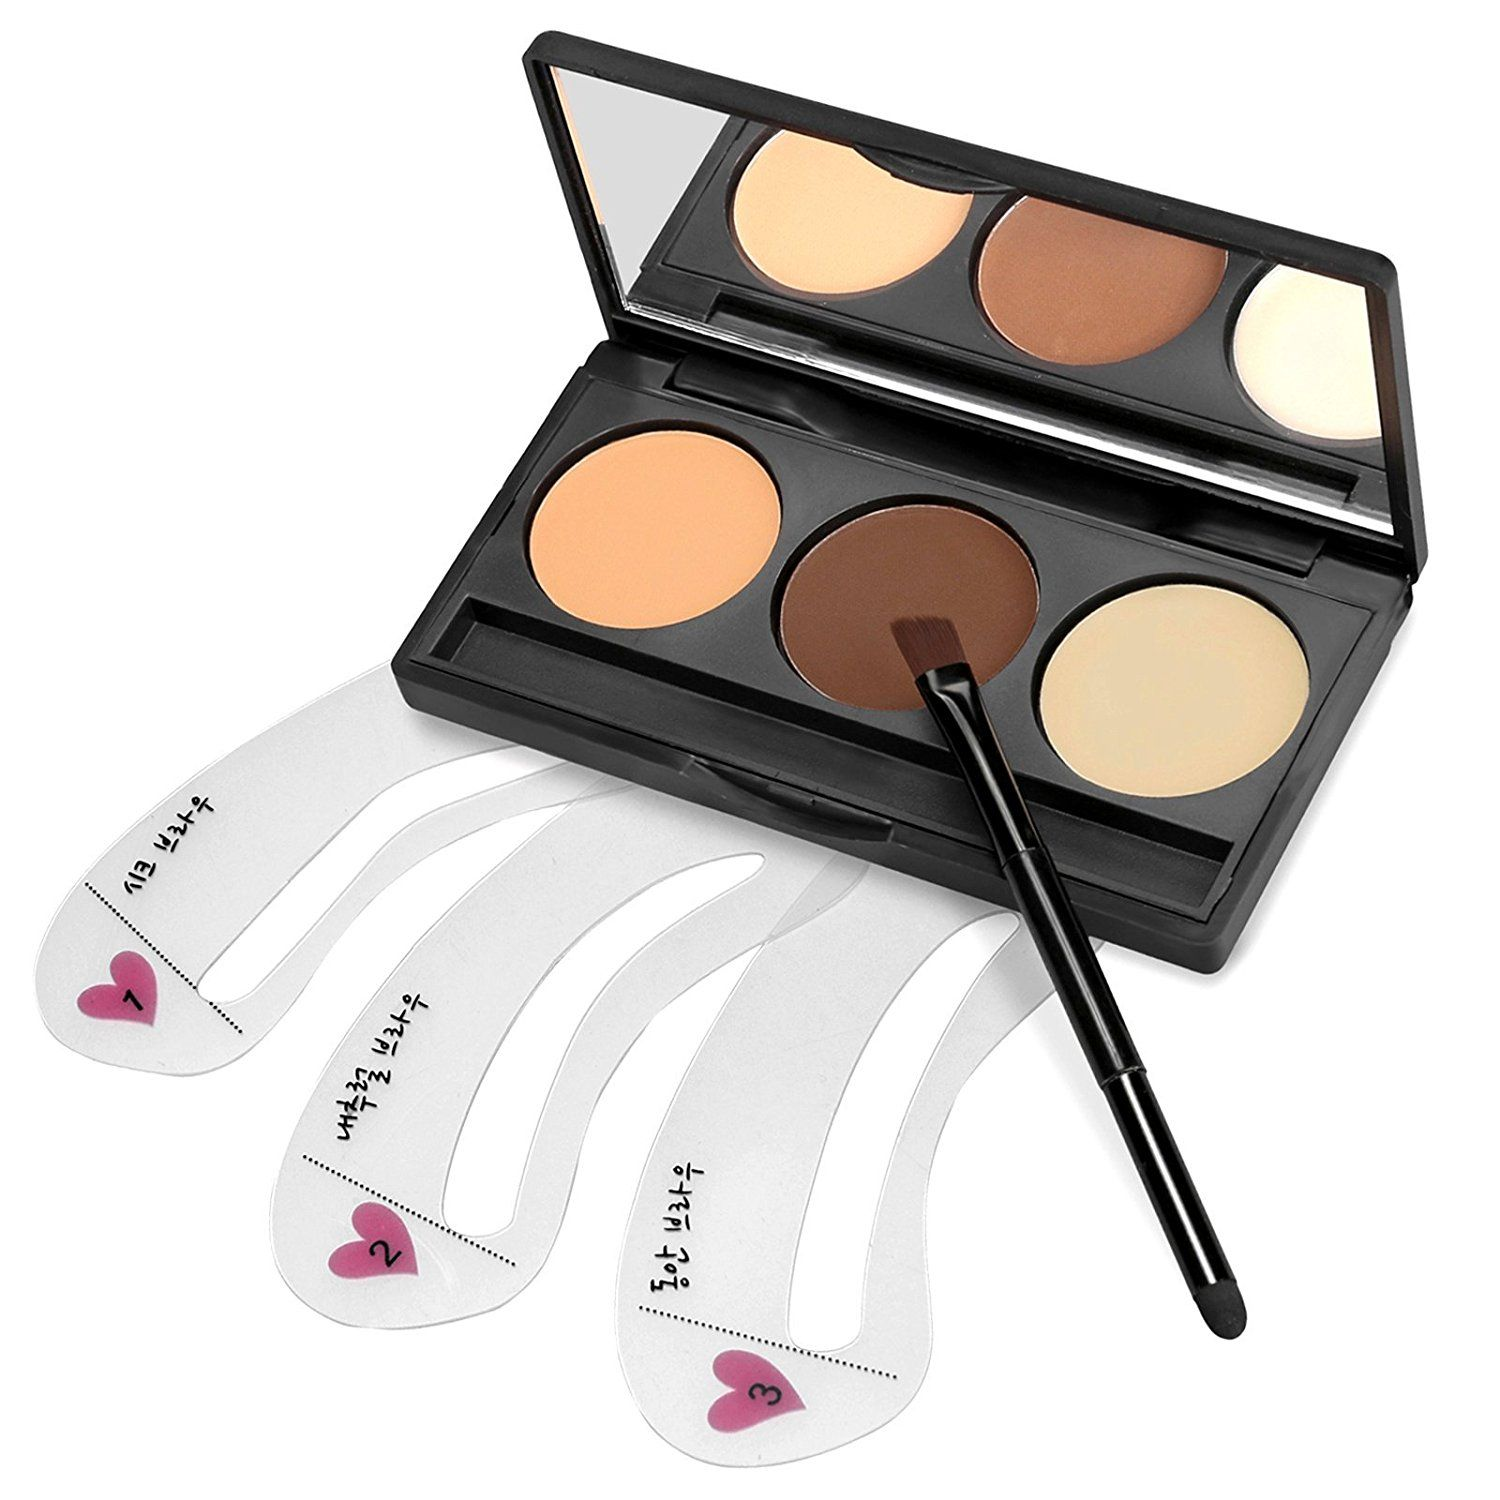 Eshion 3 Colors Cosmetics Eyebrow Brow Makeup Kit Set With 3pcs